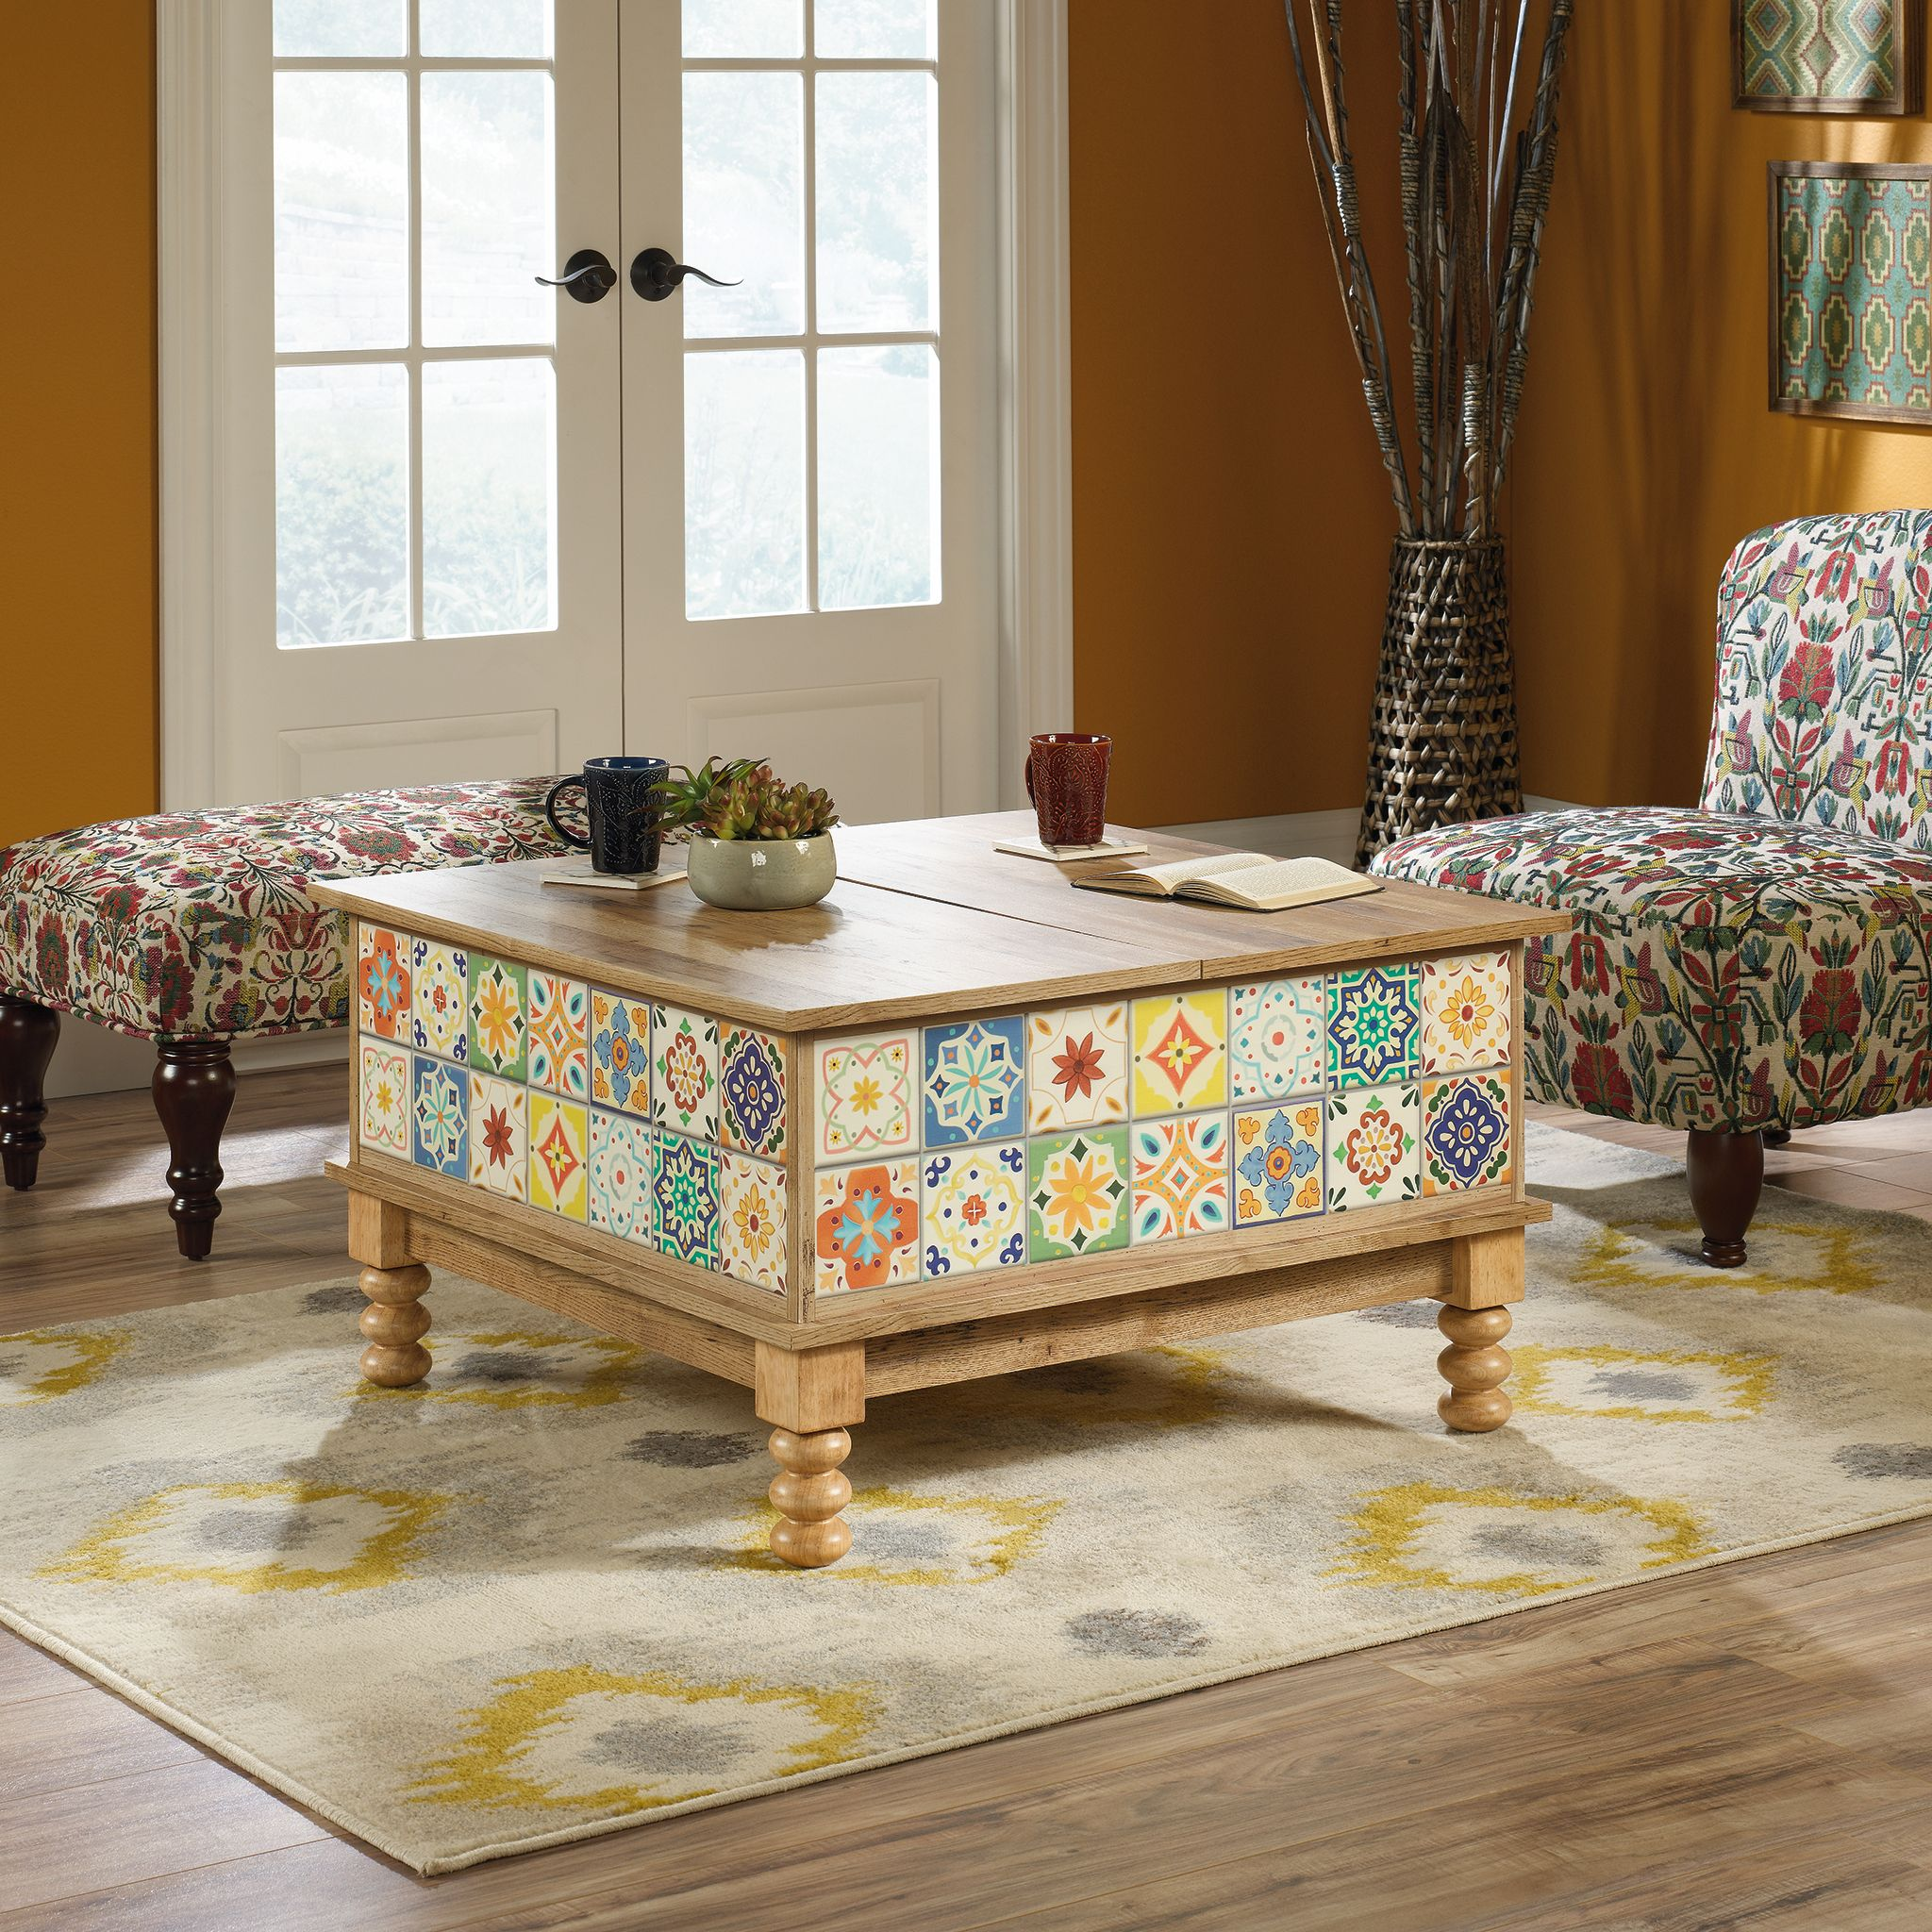 Sauder Viabella Lift-Top Coffee Table, Antigua Chestnut Finish